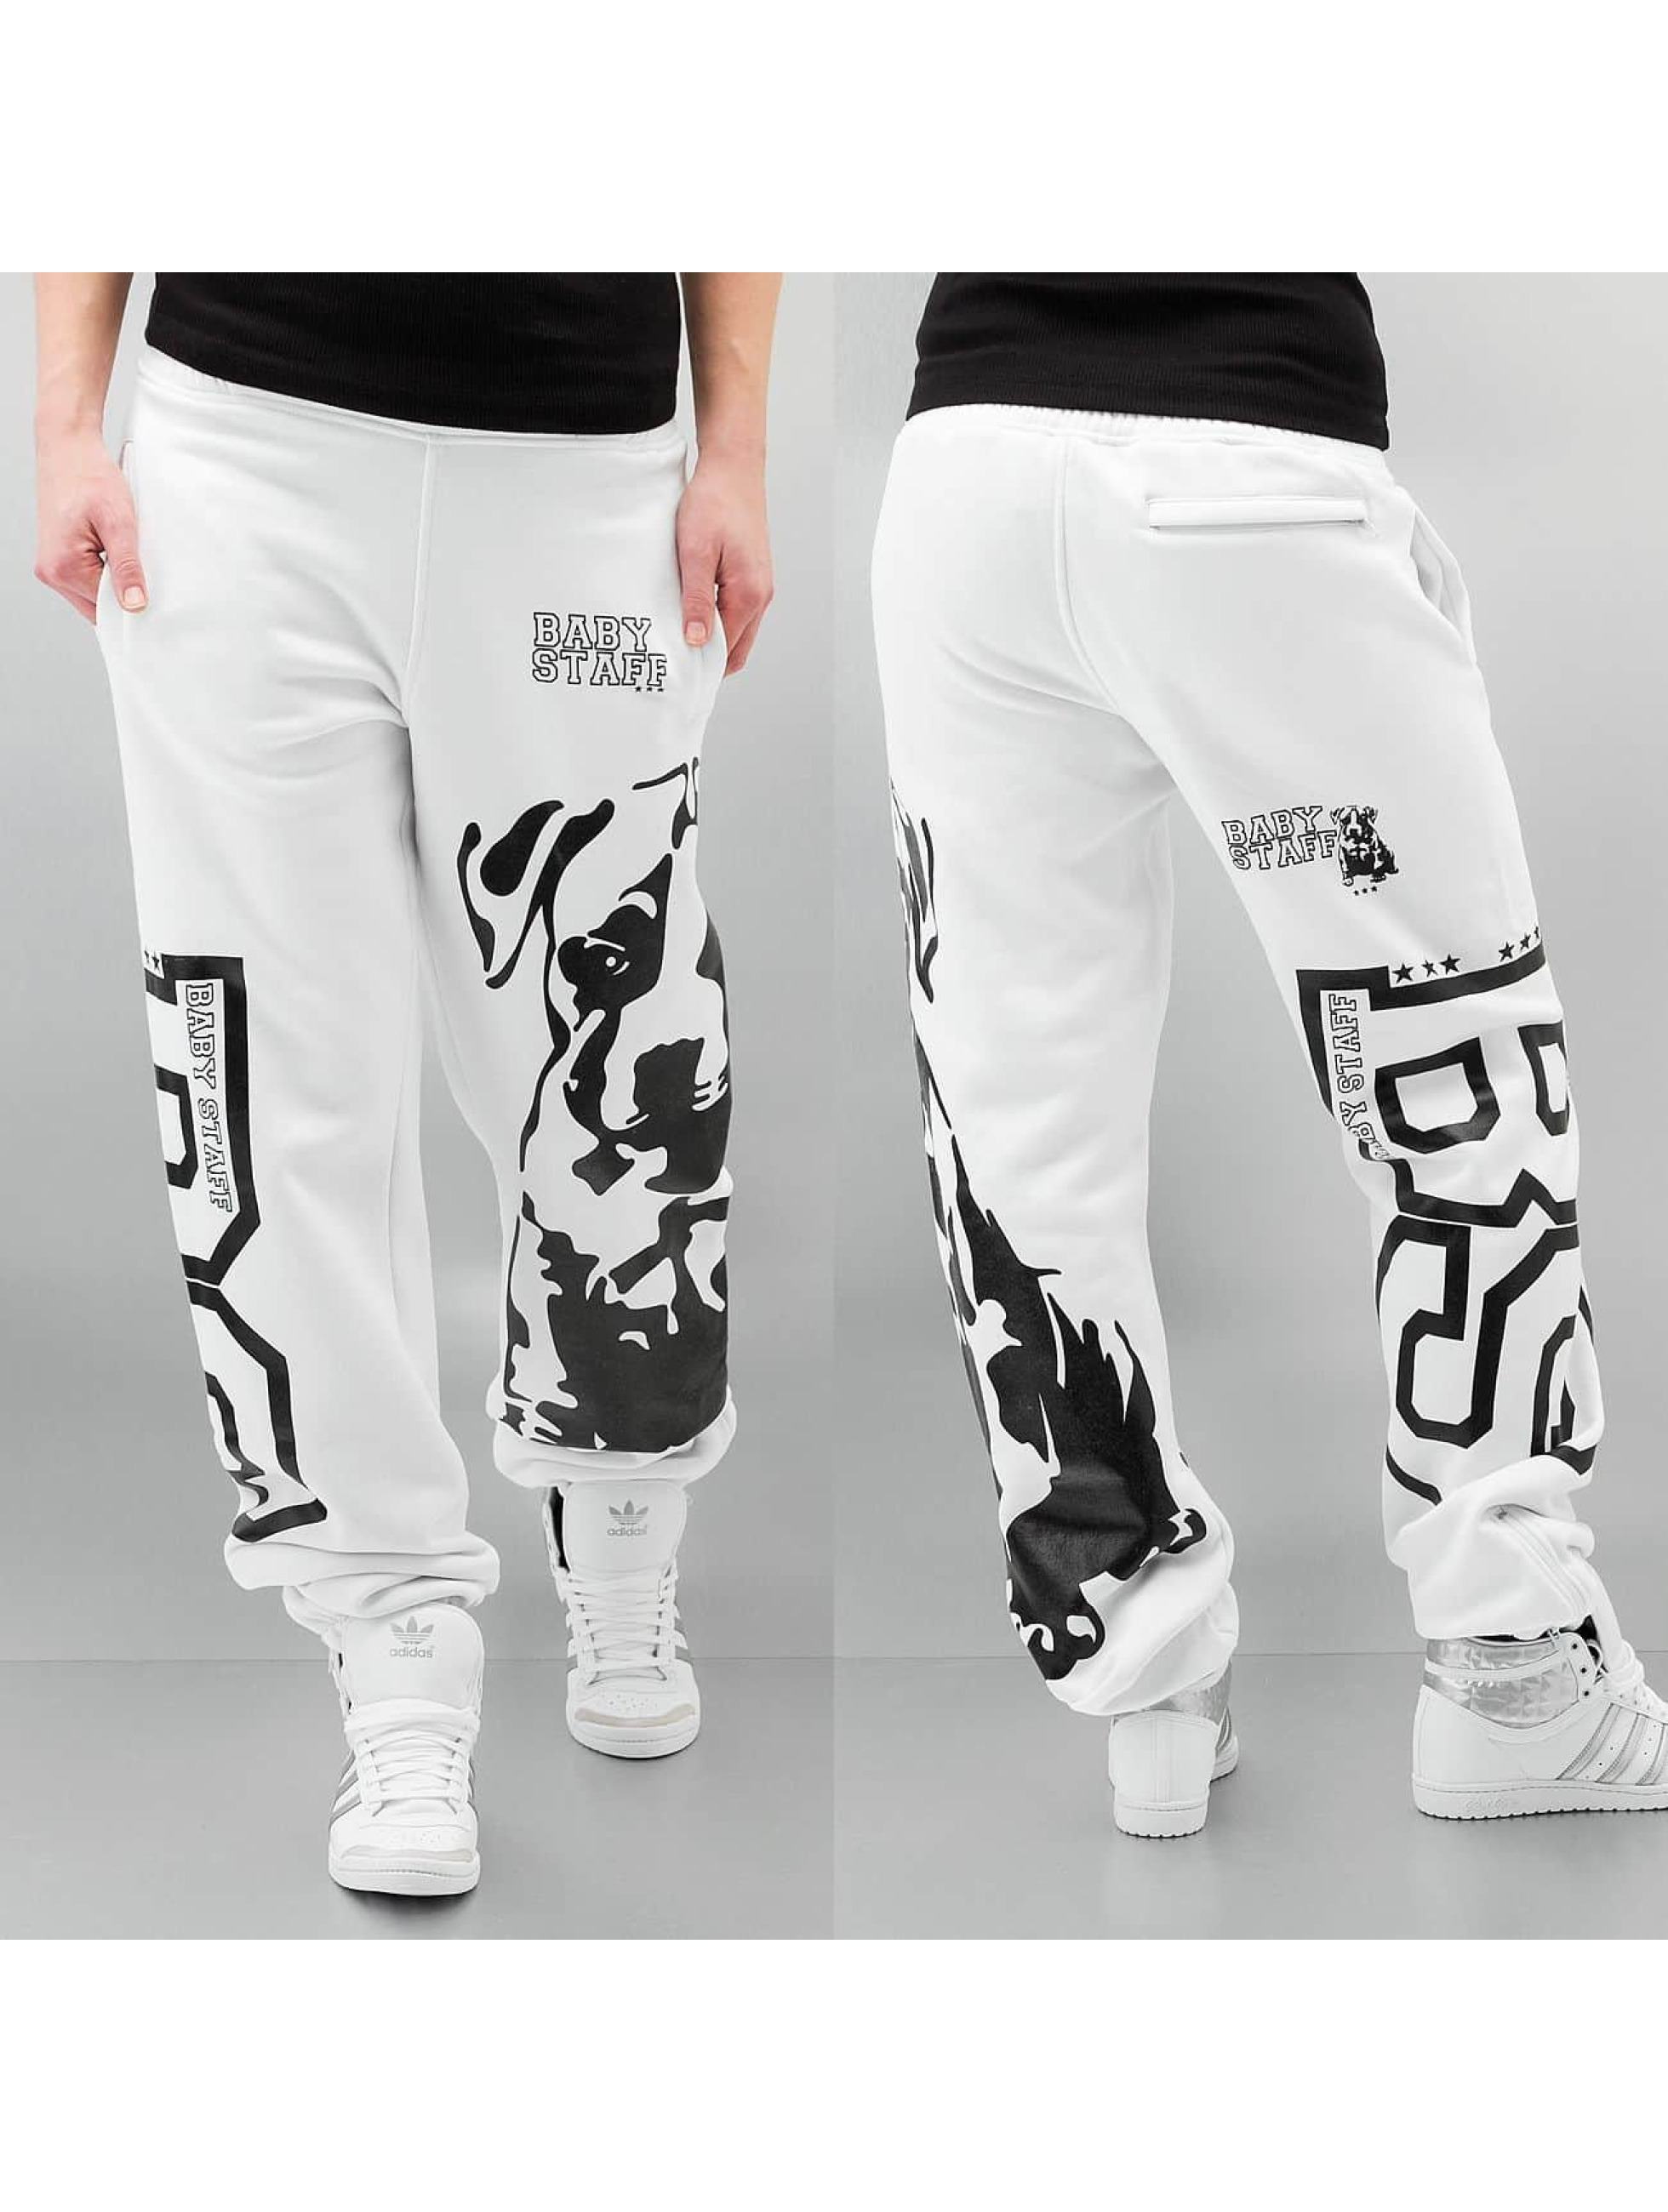 Babystaff joggingbroek Puppy wit